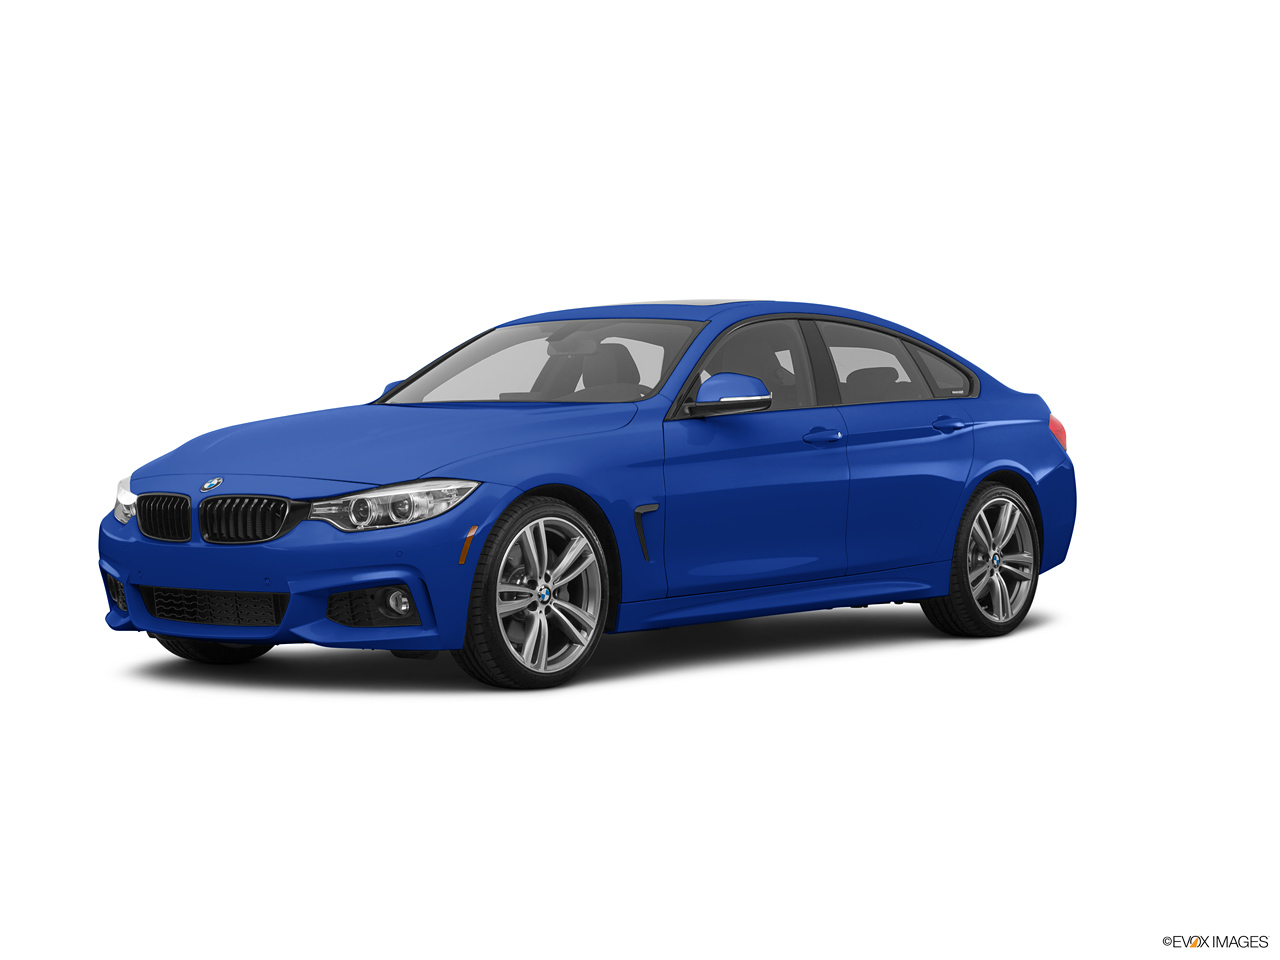 Bmw 3 series coupe measurements 11